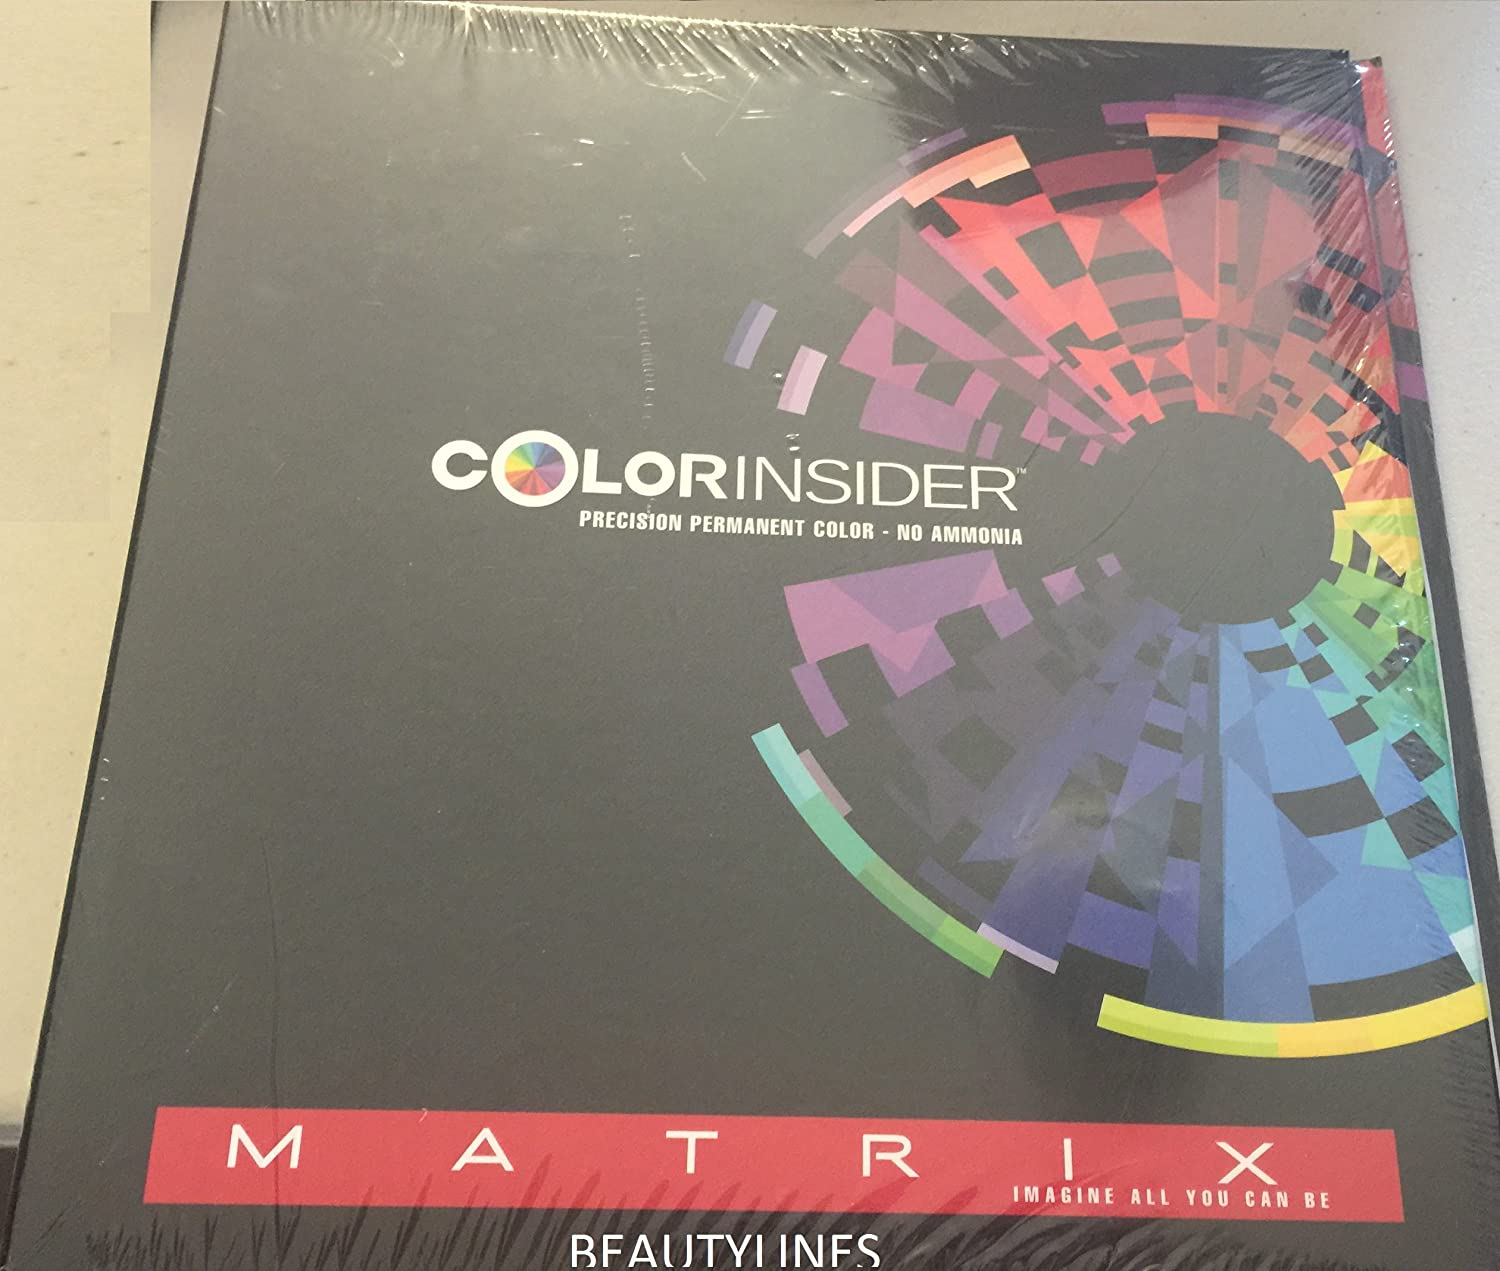 Matrix colorinsider swatch book coloring page com matrix colorinsider precision permanent color no geenschuldenfo Images